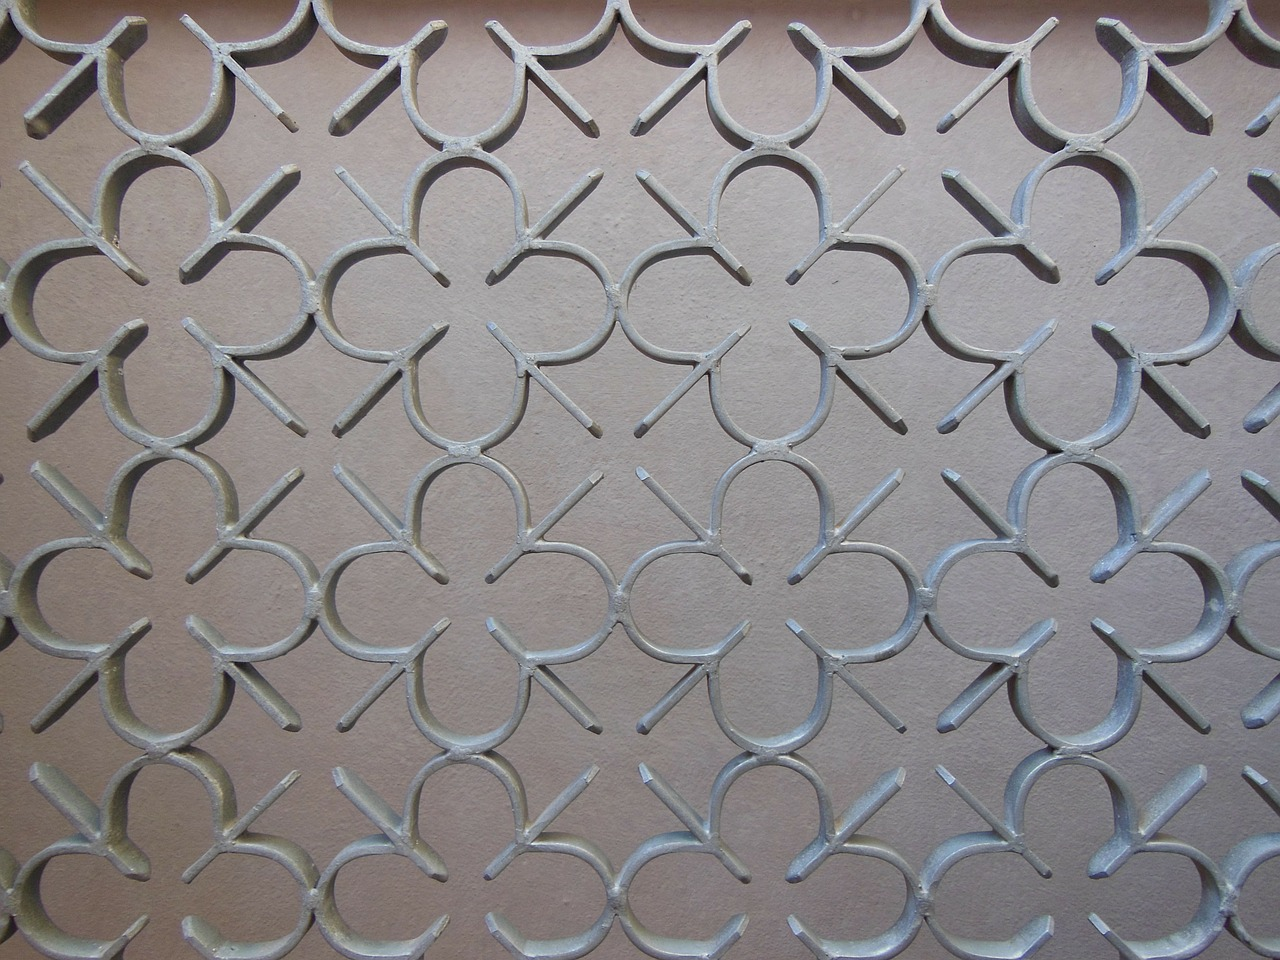 port grille iron detail free photo